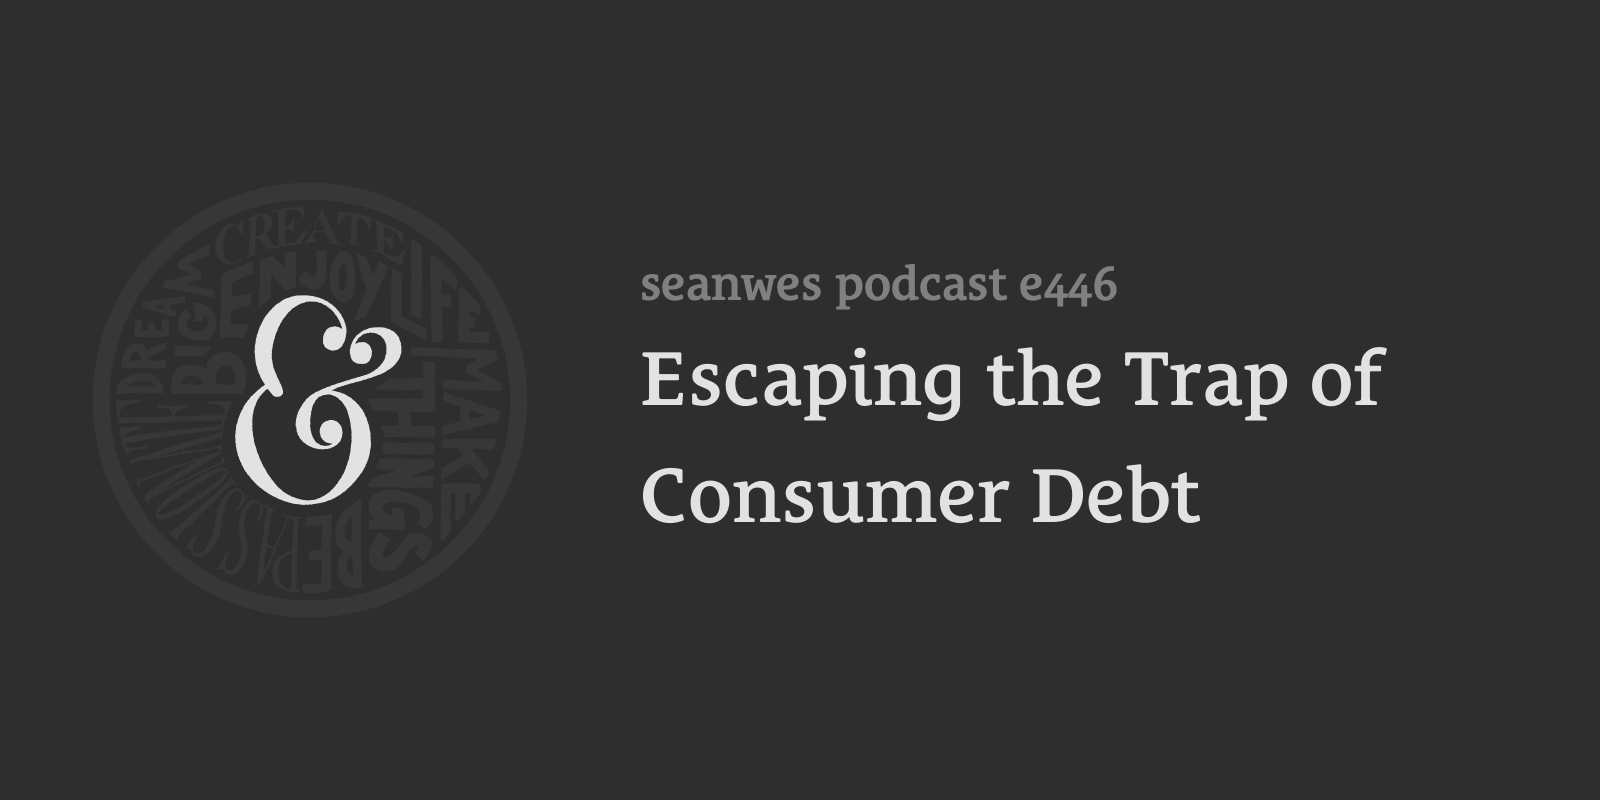 seanwes podcast: Escaping the Trap of Consumer Debt